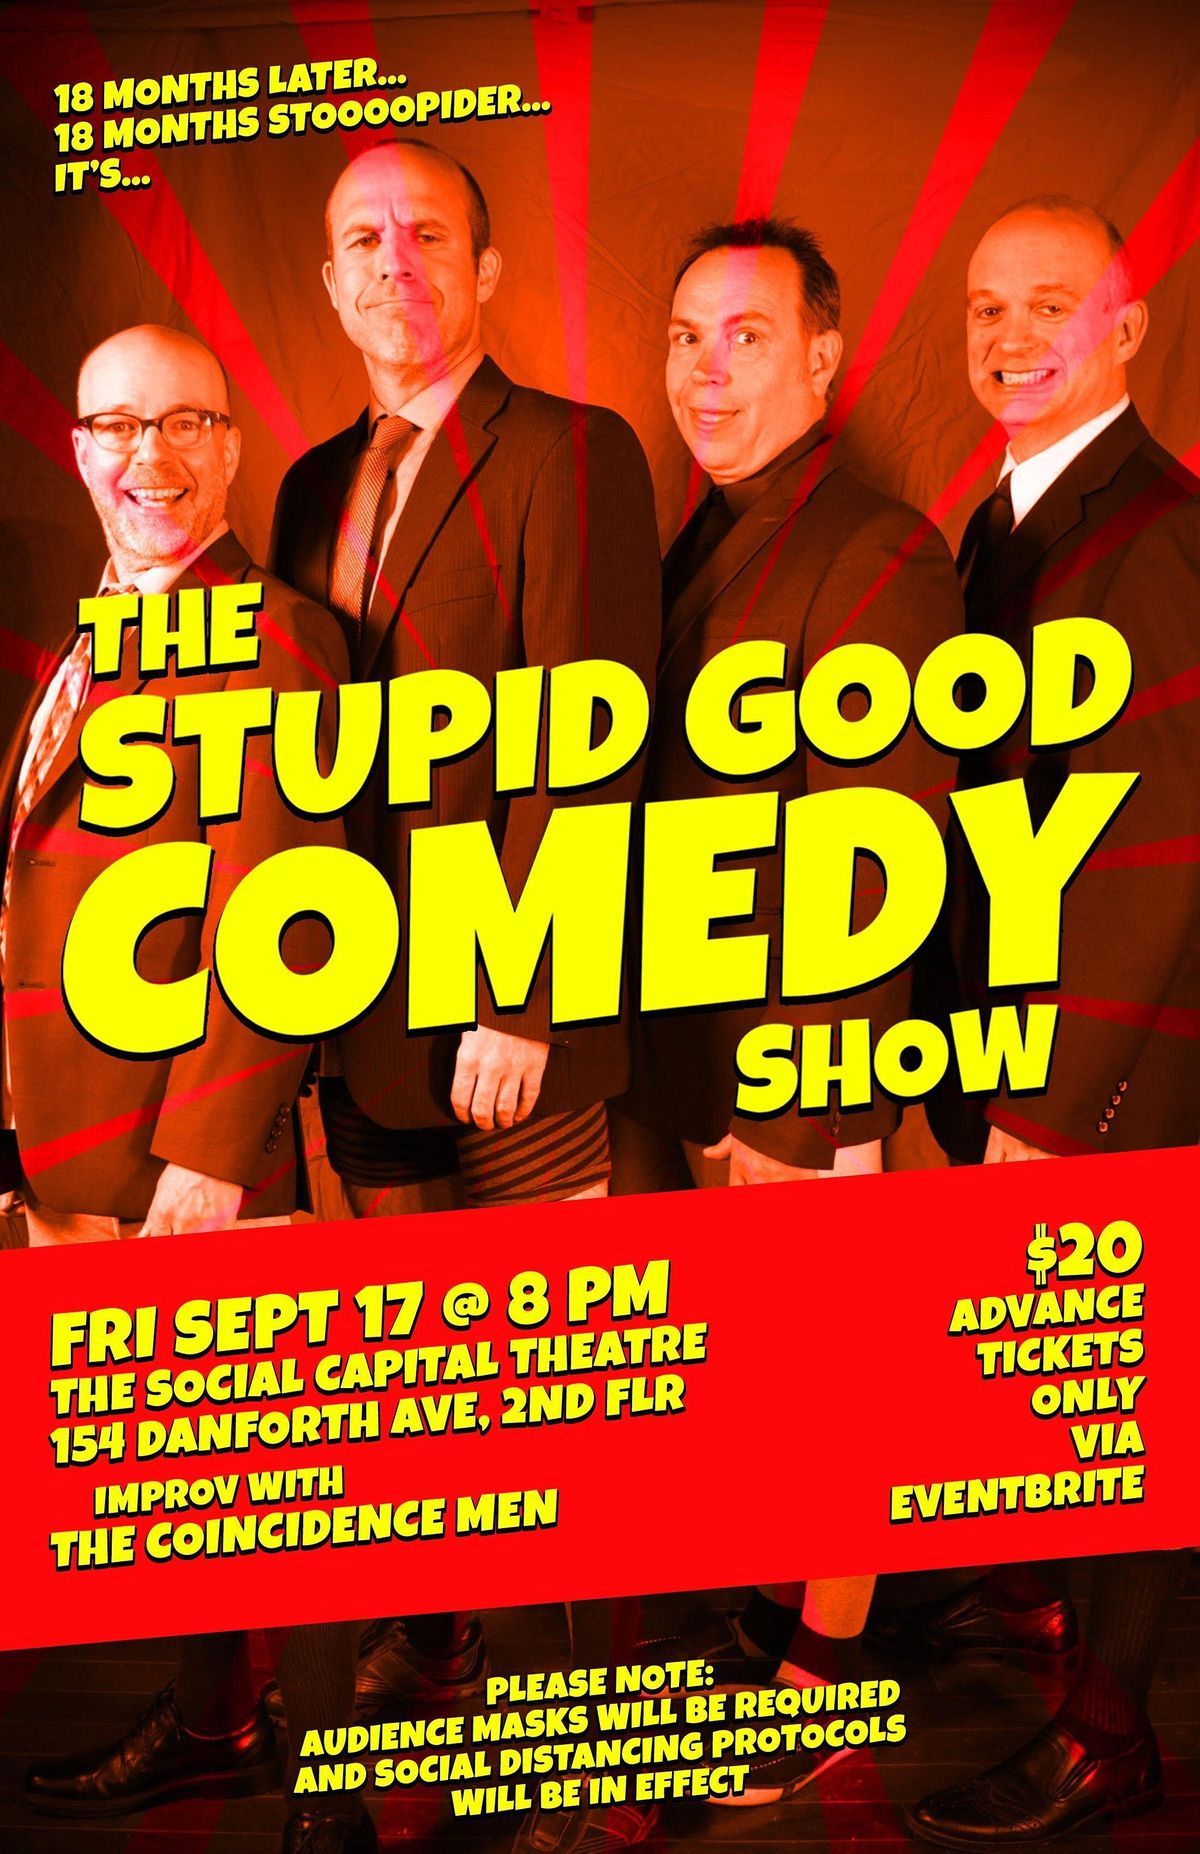 The Stupid Good Comedy Show